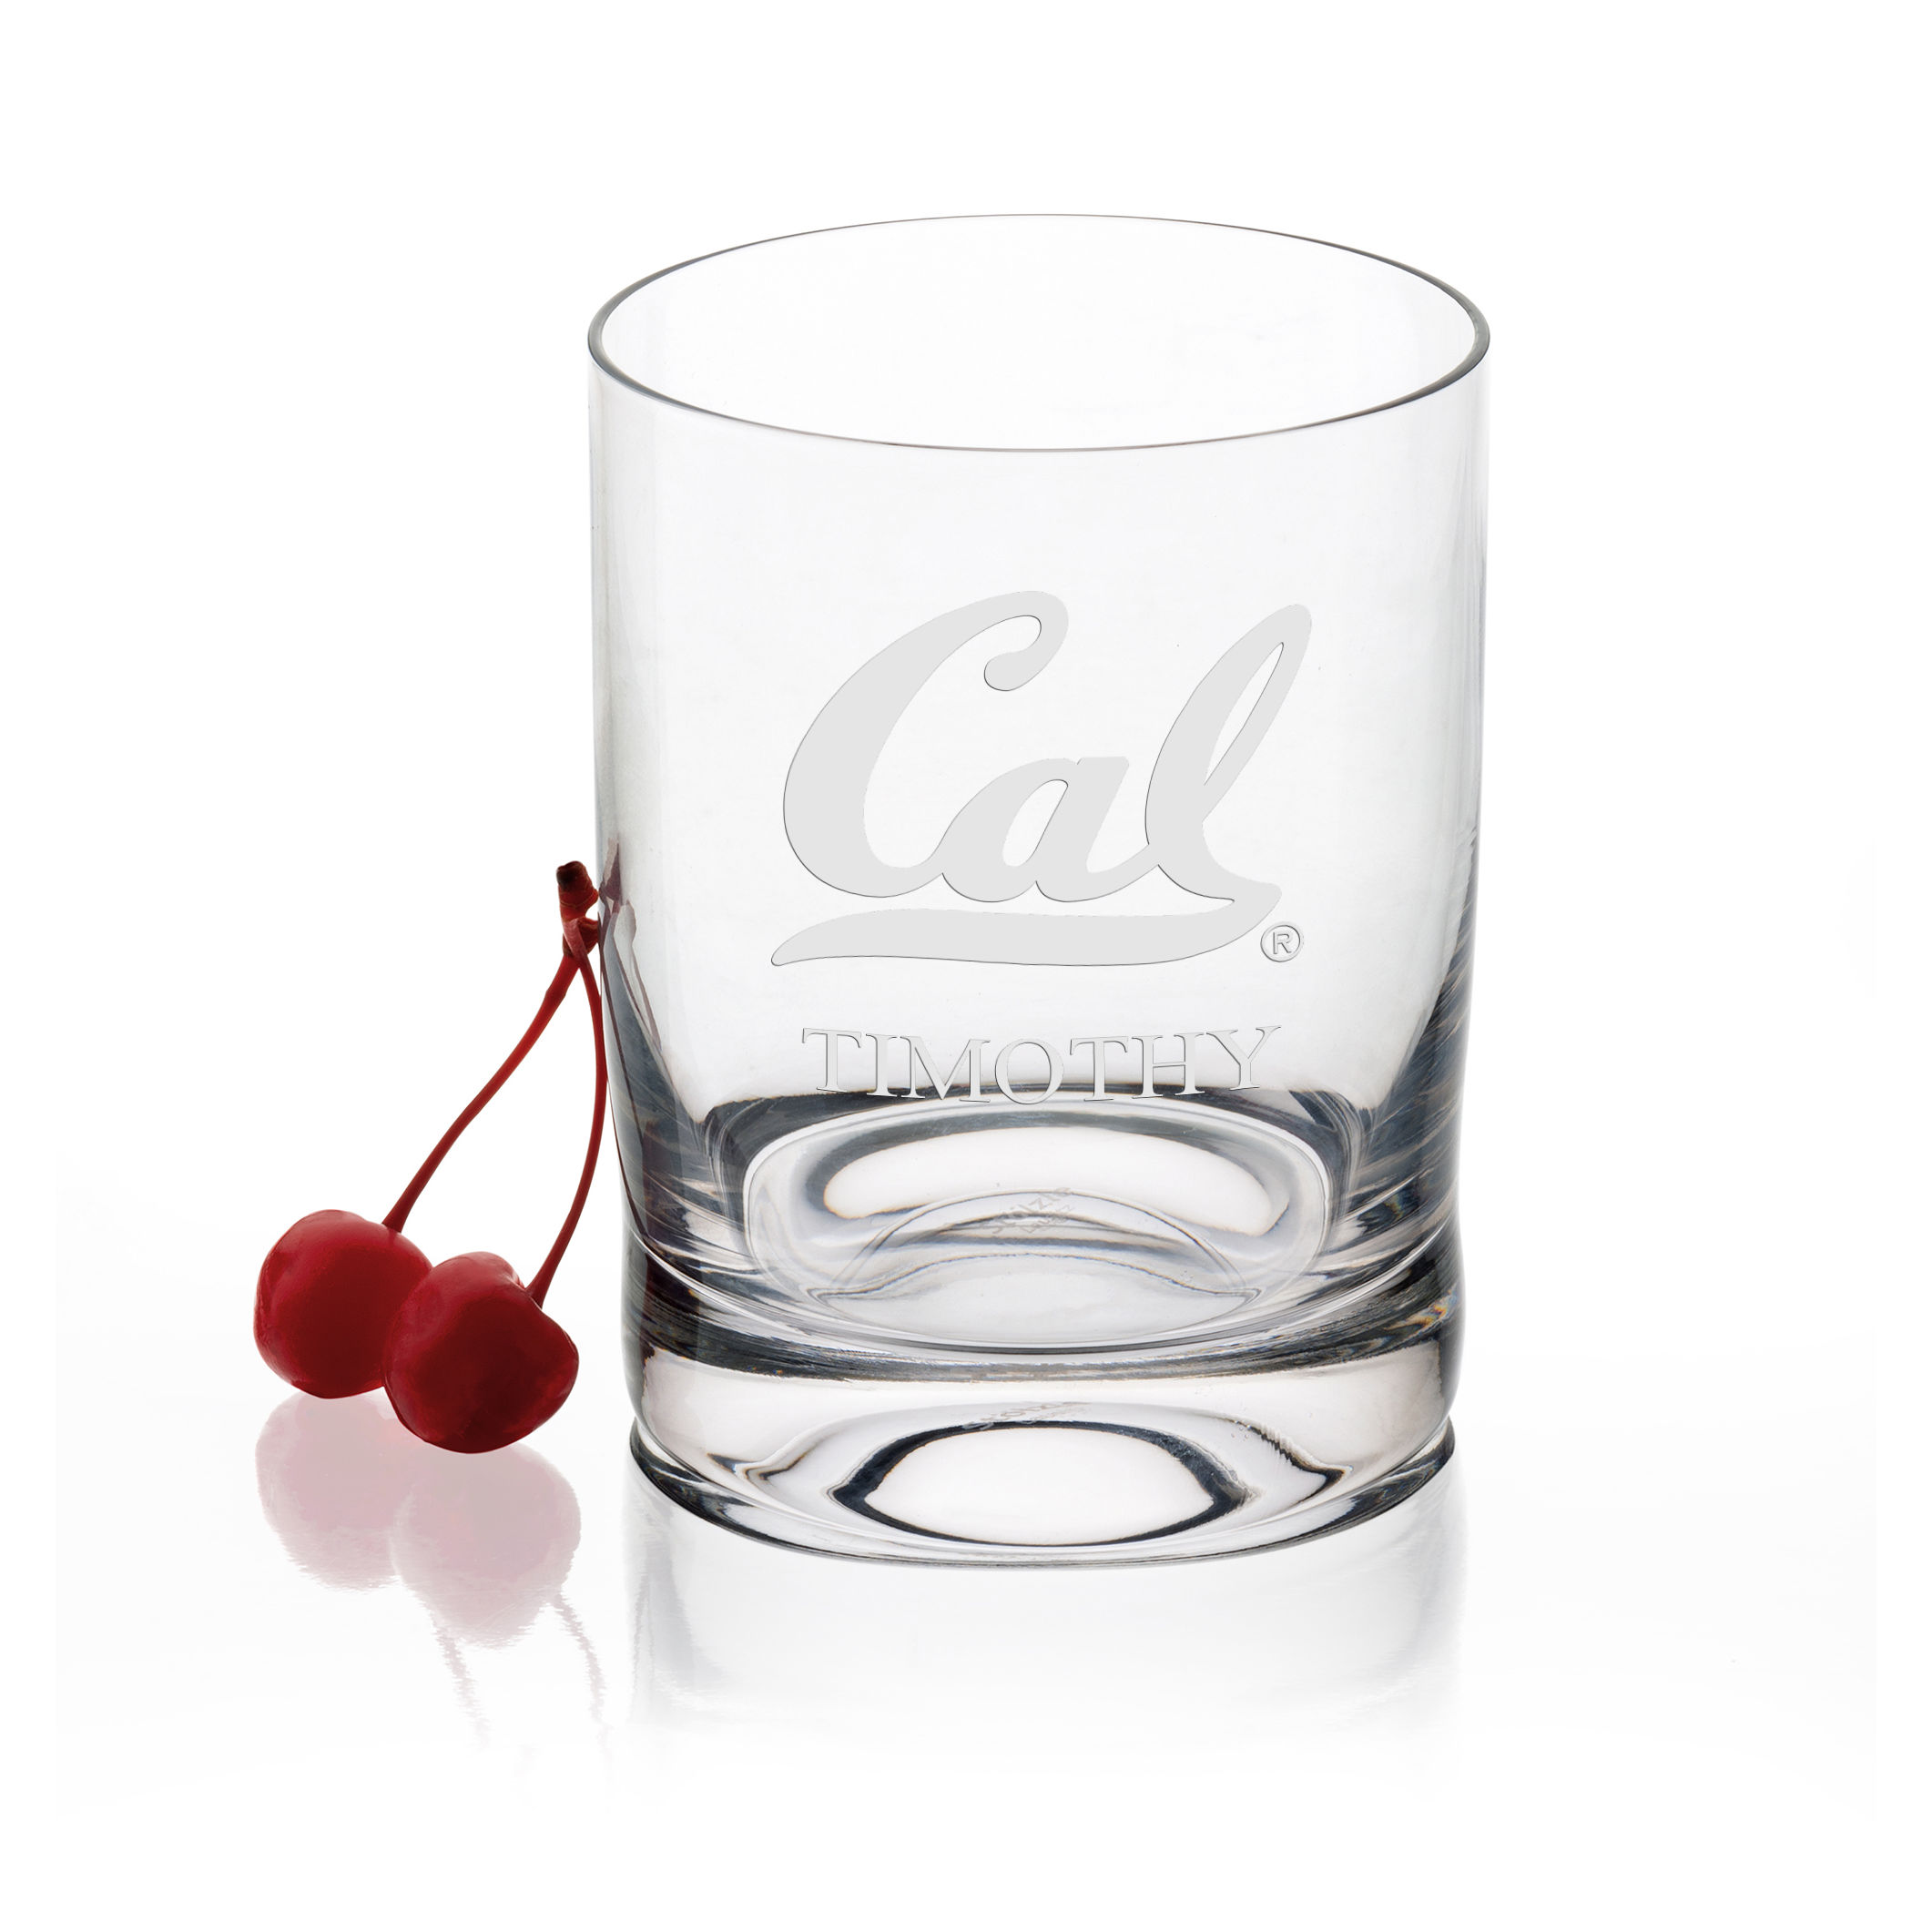 Berkeley Tumbler Glasses - Set of 2